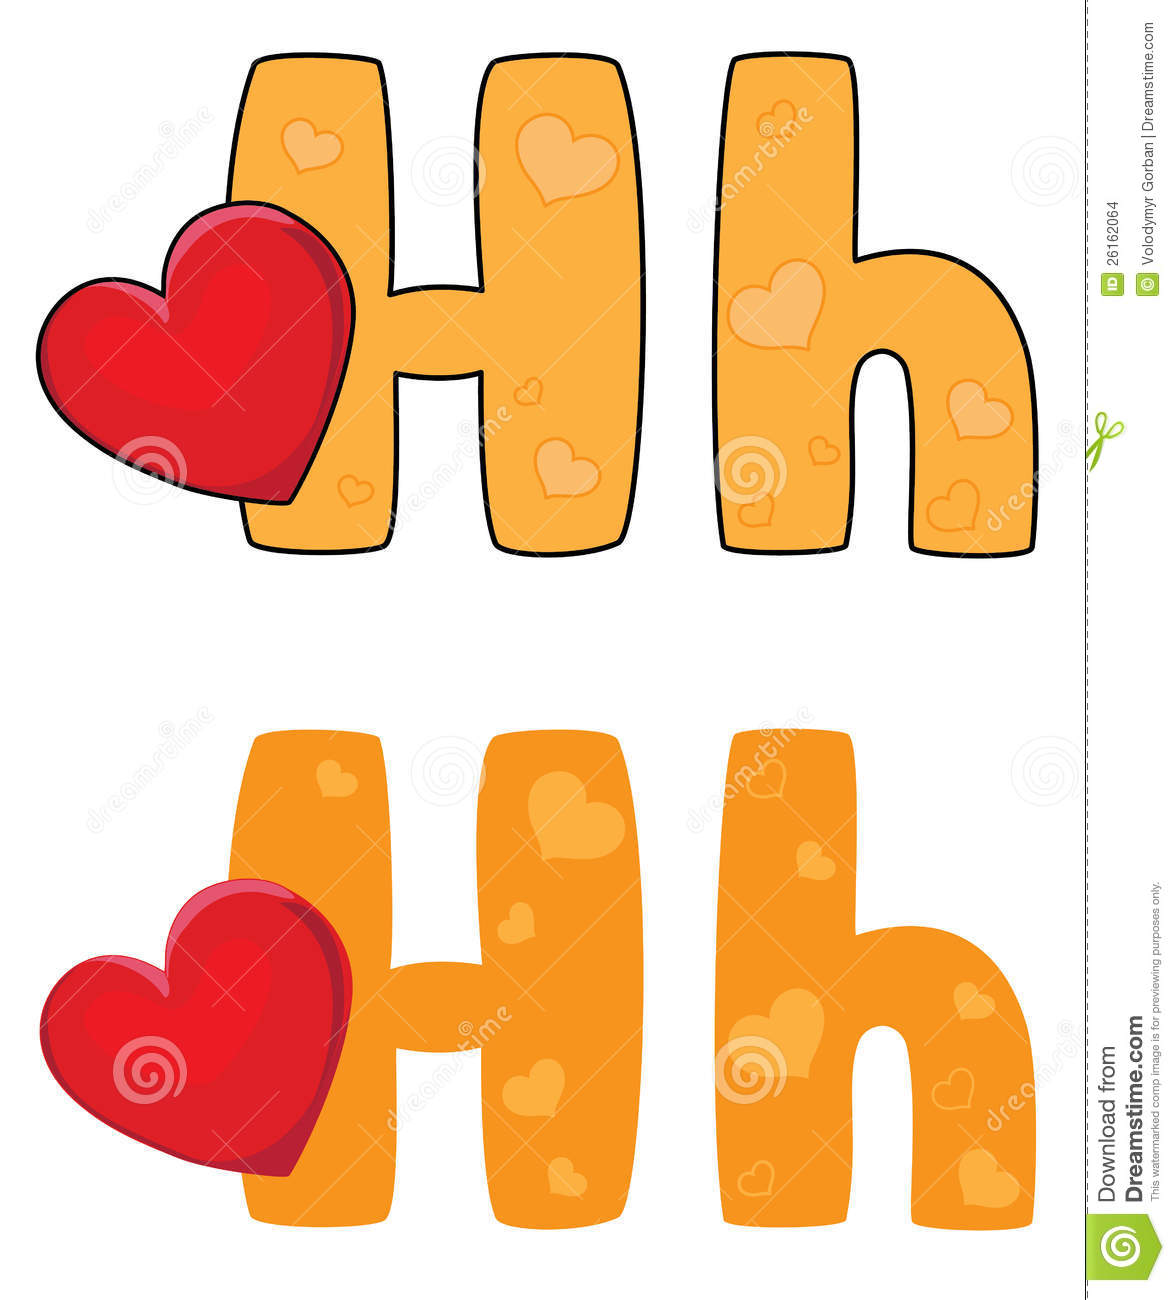 Letter H Heart Stock Images - Image: 26162064